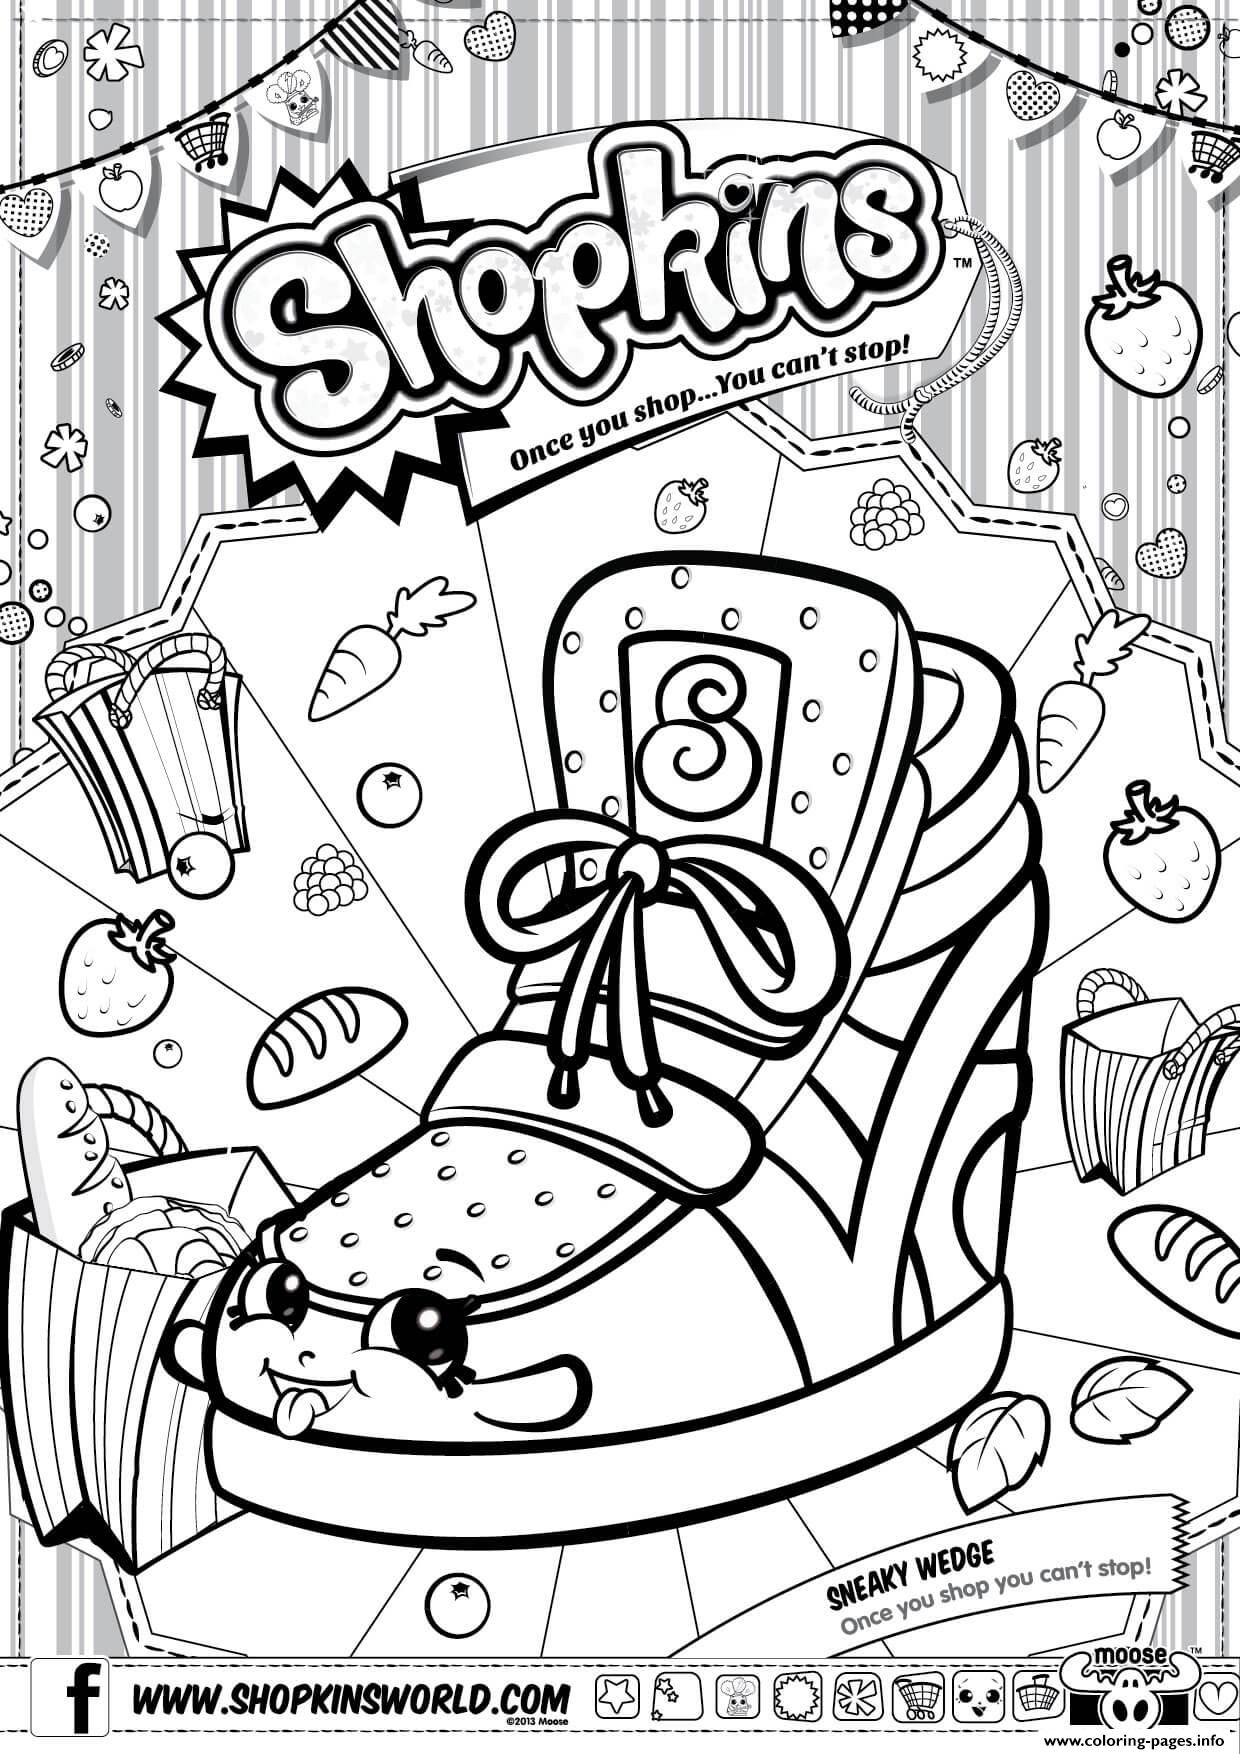 Coloring pages info - Coloring Pages Info 15